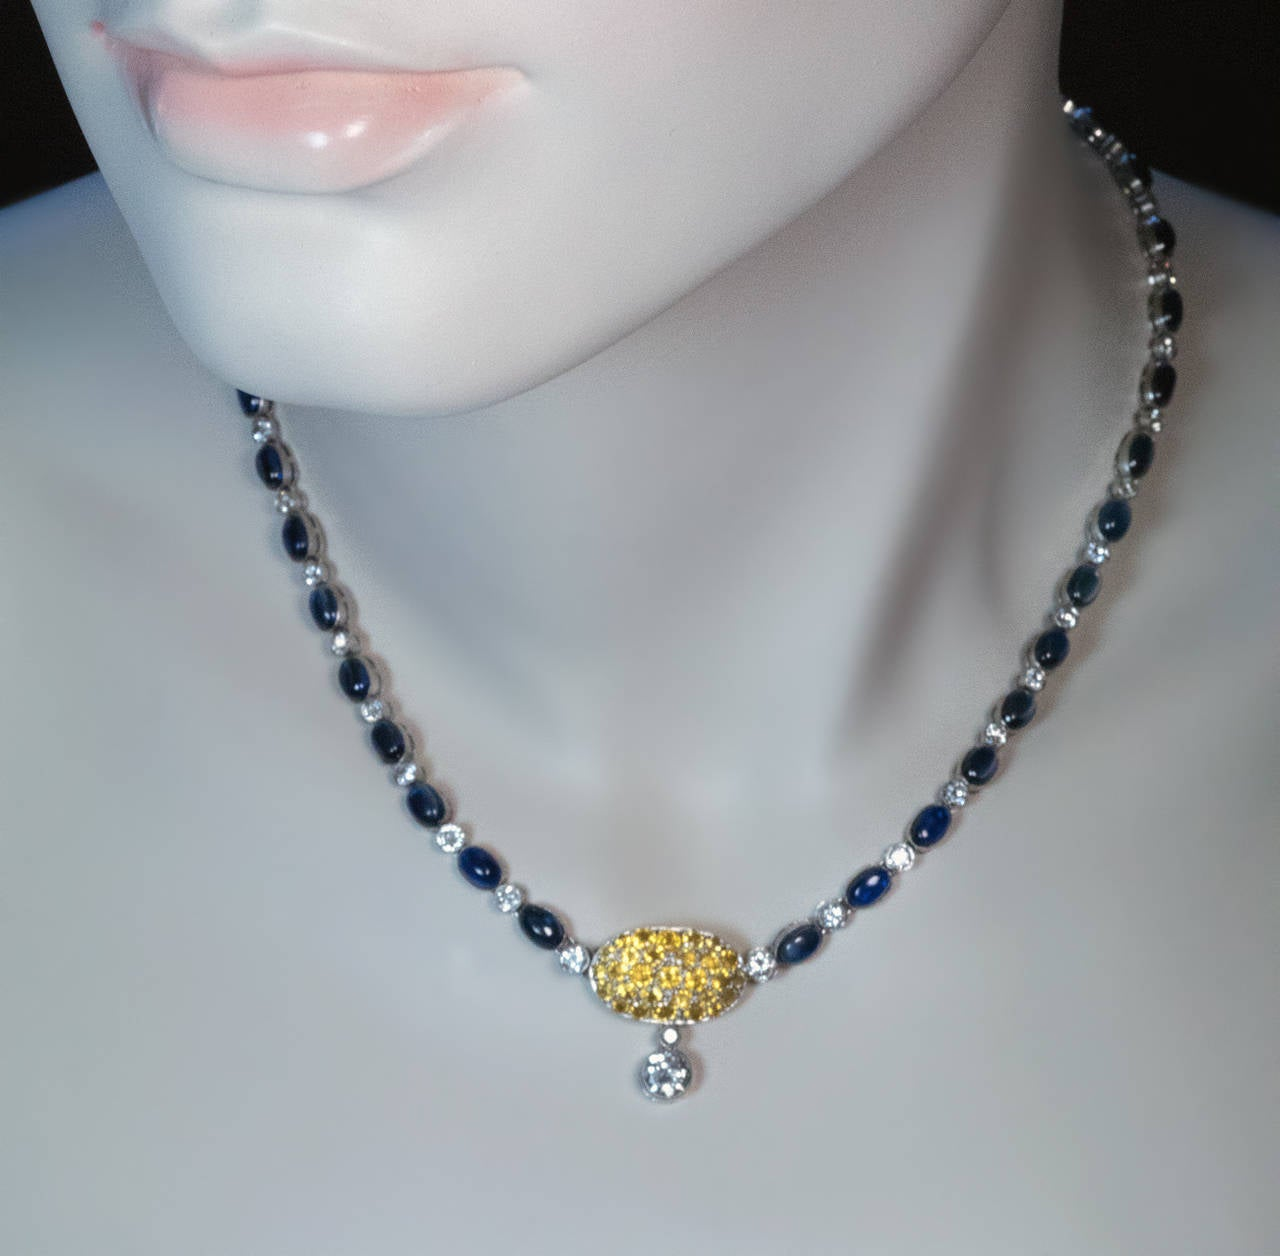 The necklace is bezel-set with 39 cabochon cut blue sapphires and 40 old European and transitional cut diamonds. The oval clasp with a two-stone diamond pendant is densely set with round faceted yellow sapphires. 